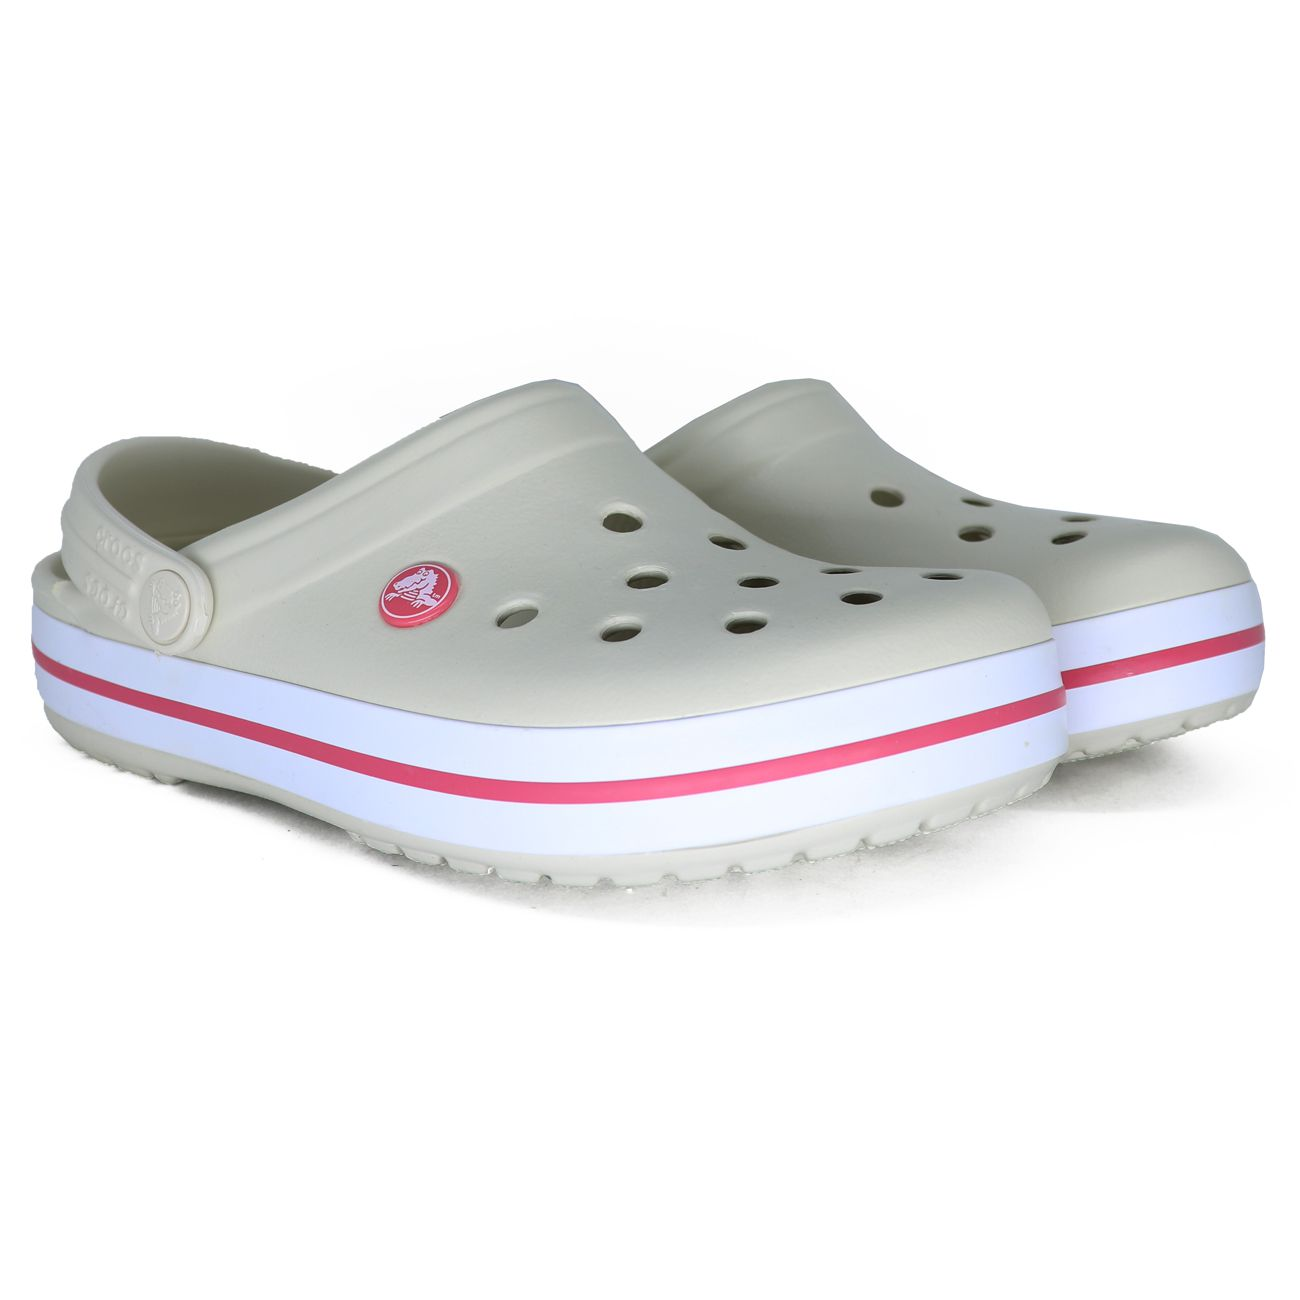 Sandalia Crocs Crocband Off White